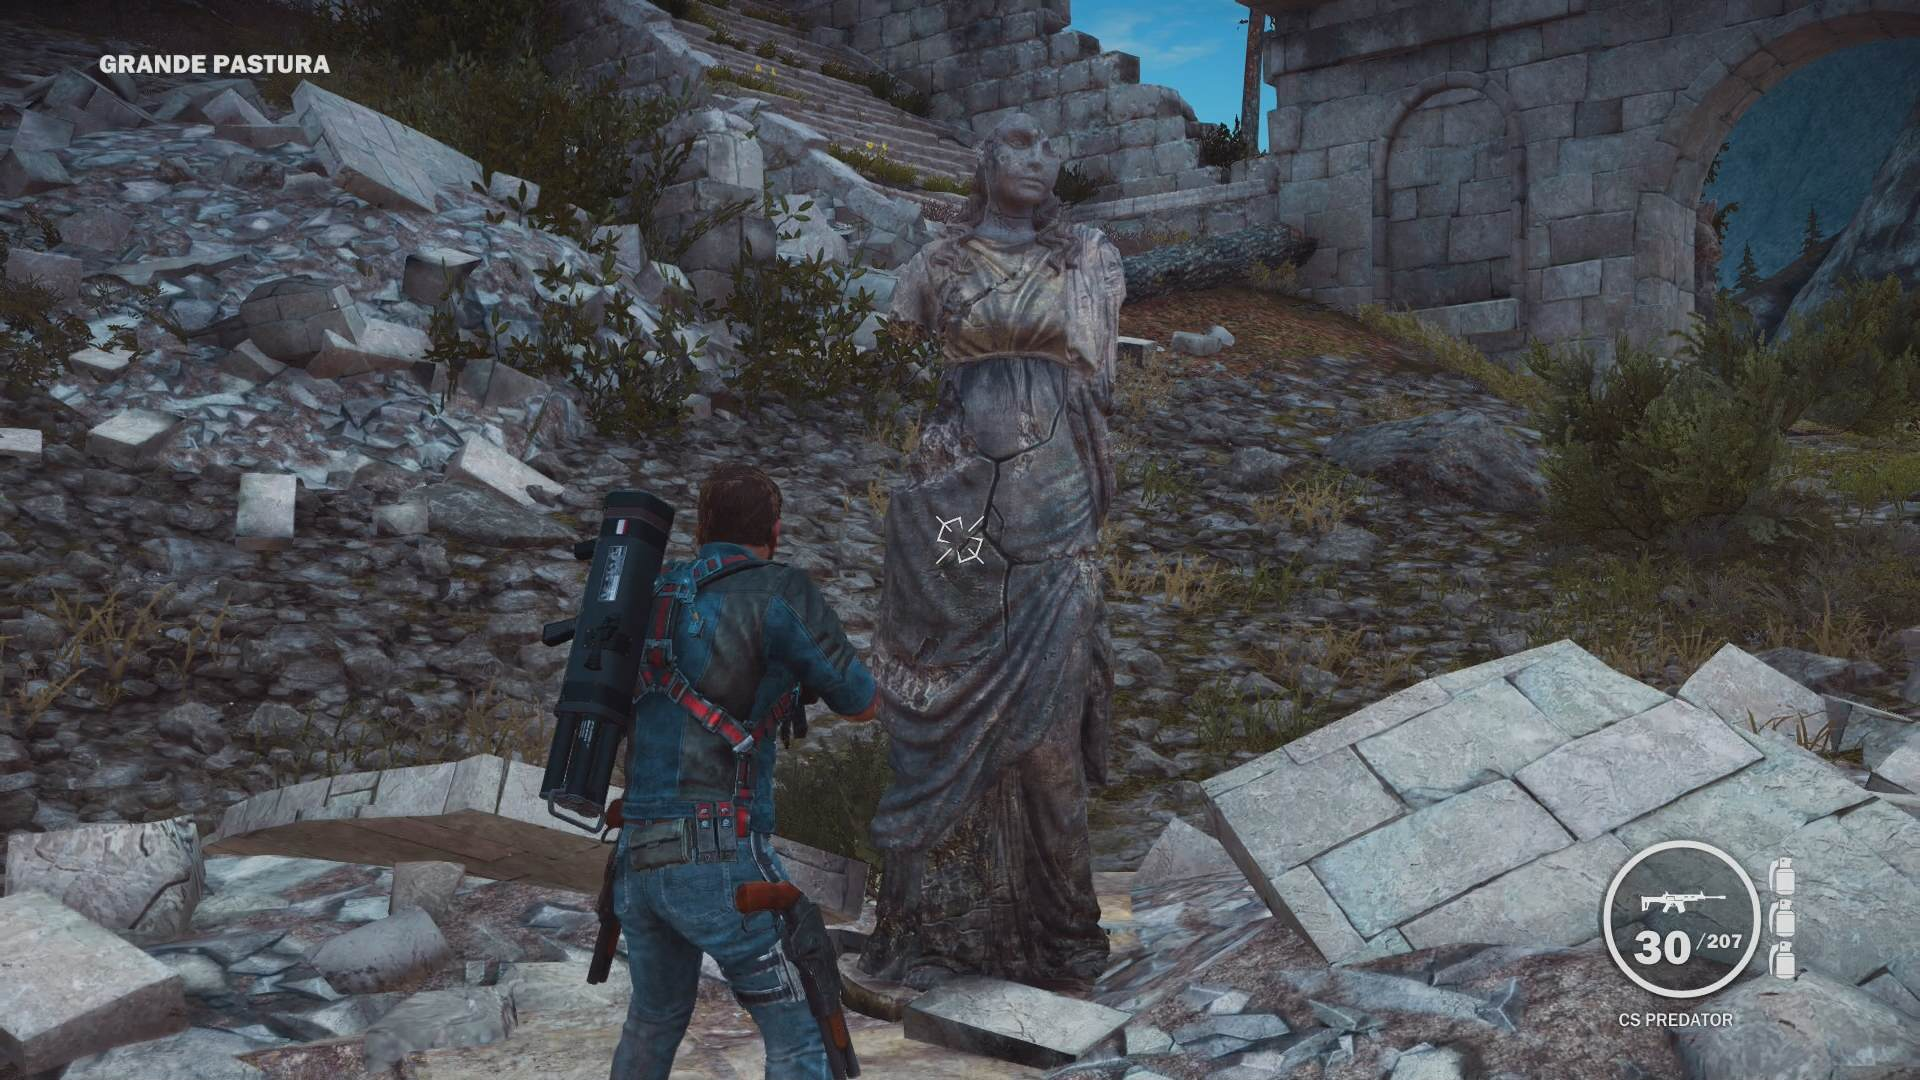 Eleven Great Videogame Easter Eggs From 2014/15 Just Cause 3 Dr. Who Weeping Angels Easter Egg